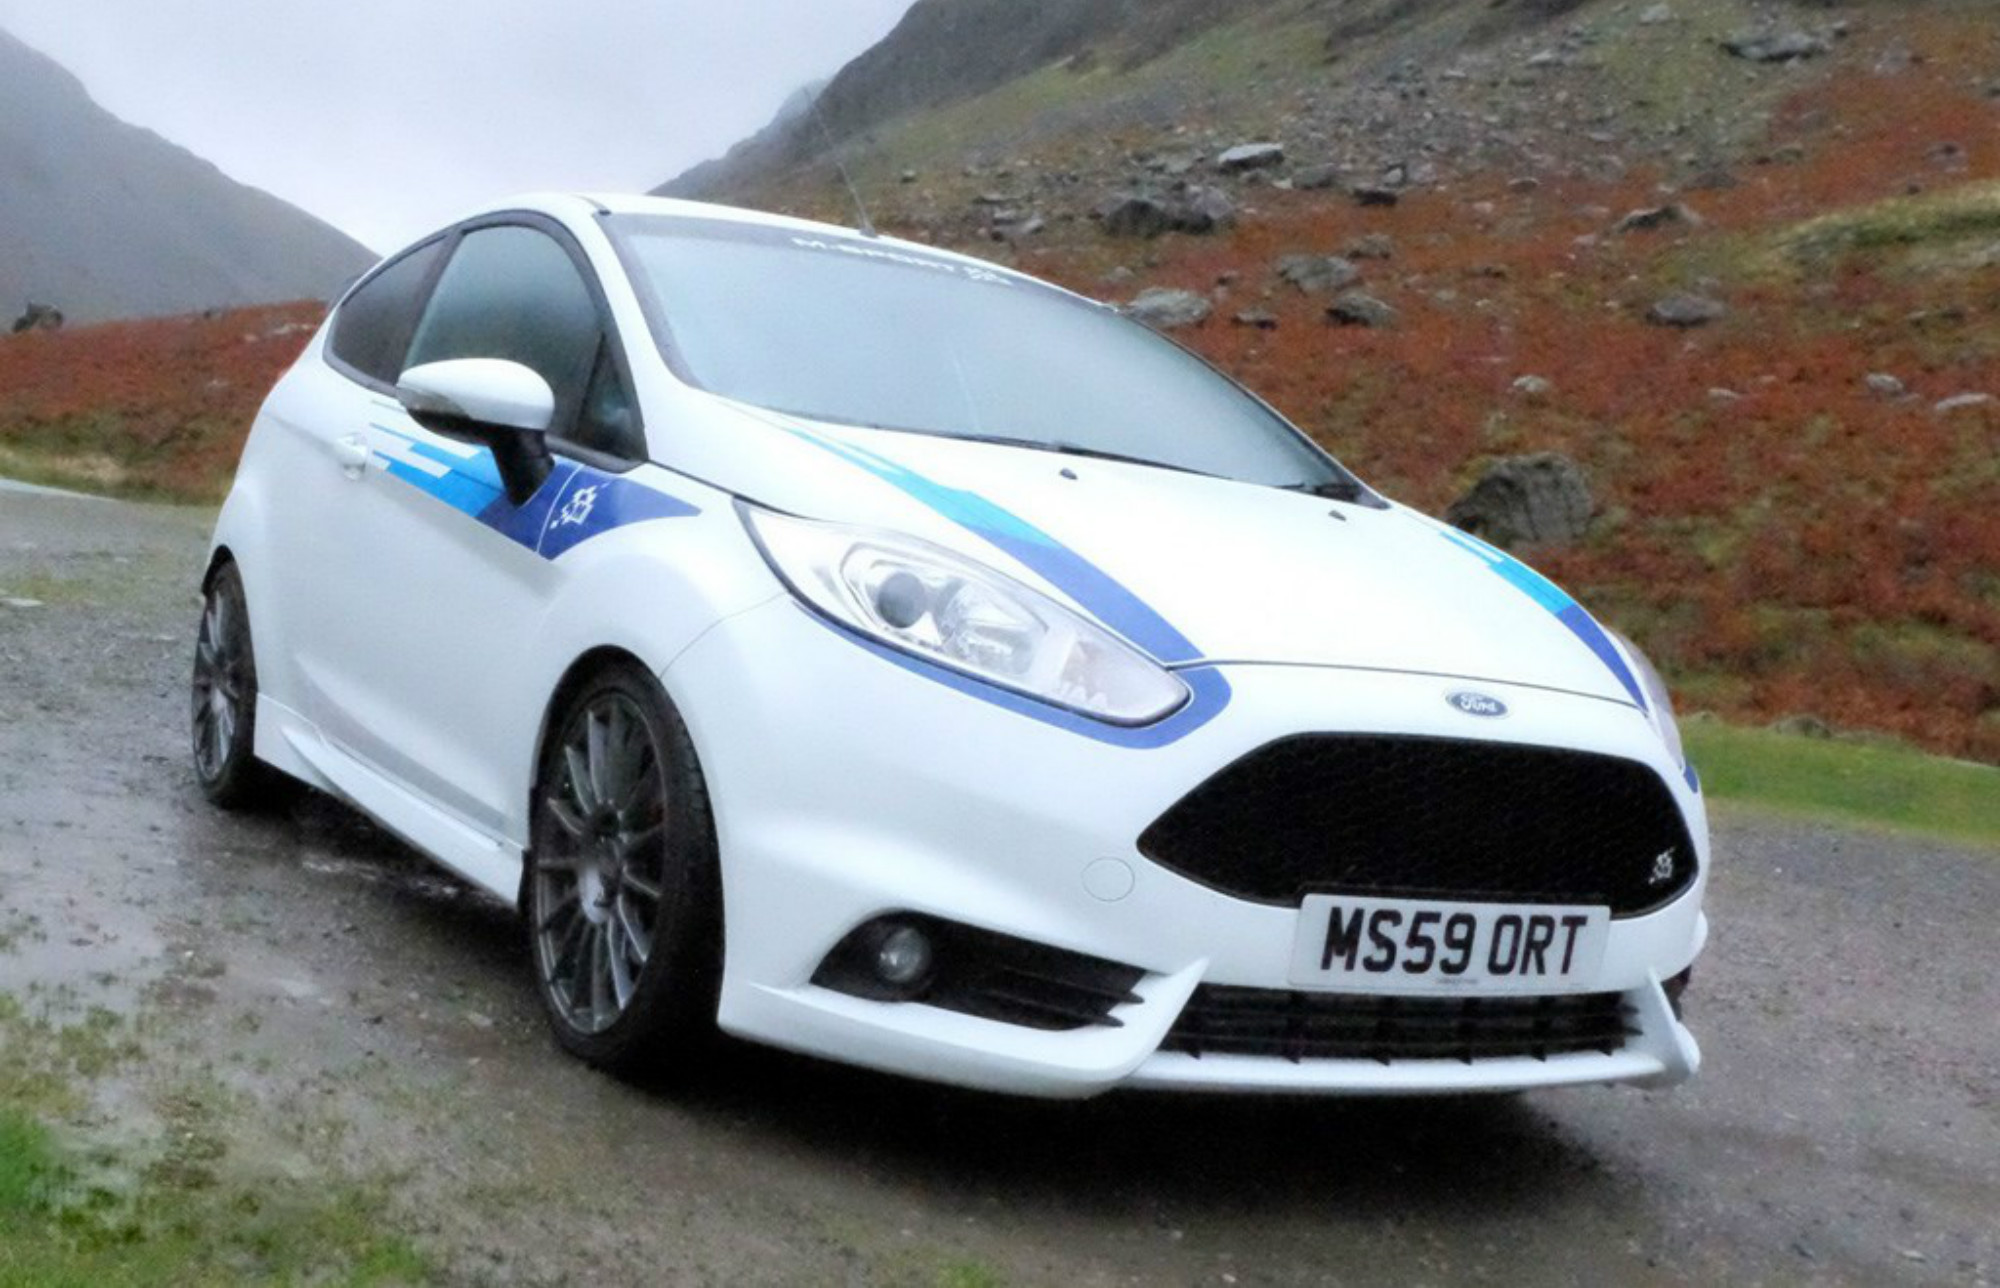 rally inspired ford fiesta m sport edition unveiled car keys. Black Bedroom Furniture Sets. Home Design Ideas